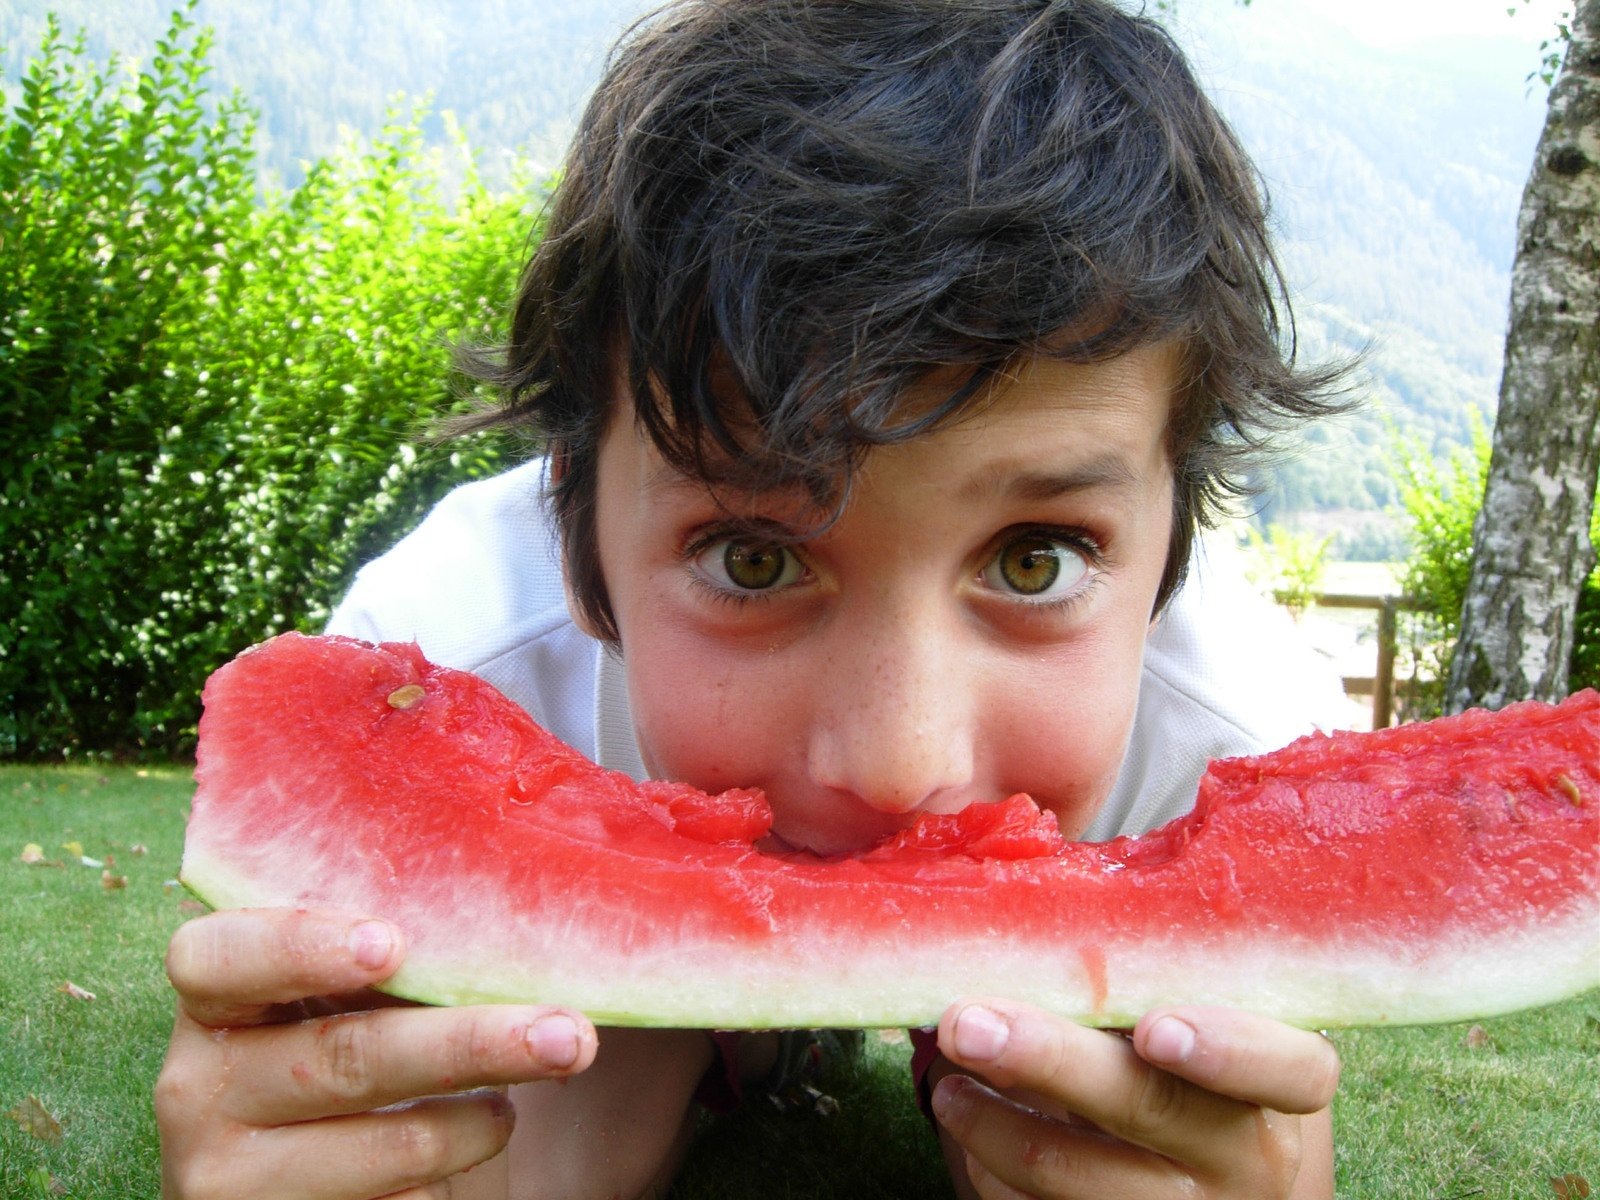 diving-in-a-watermelon-1320508